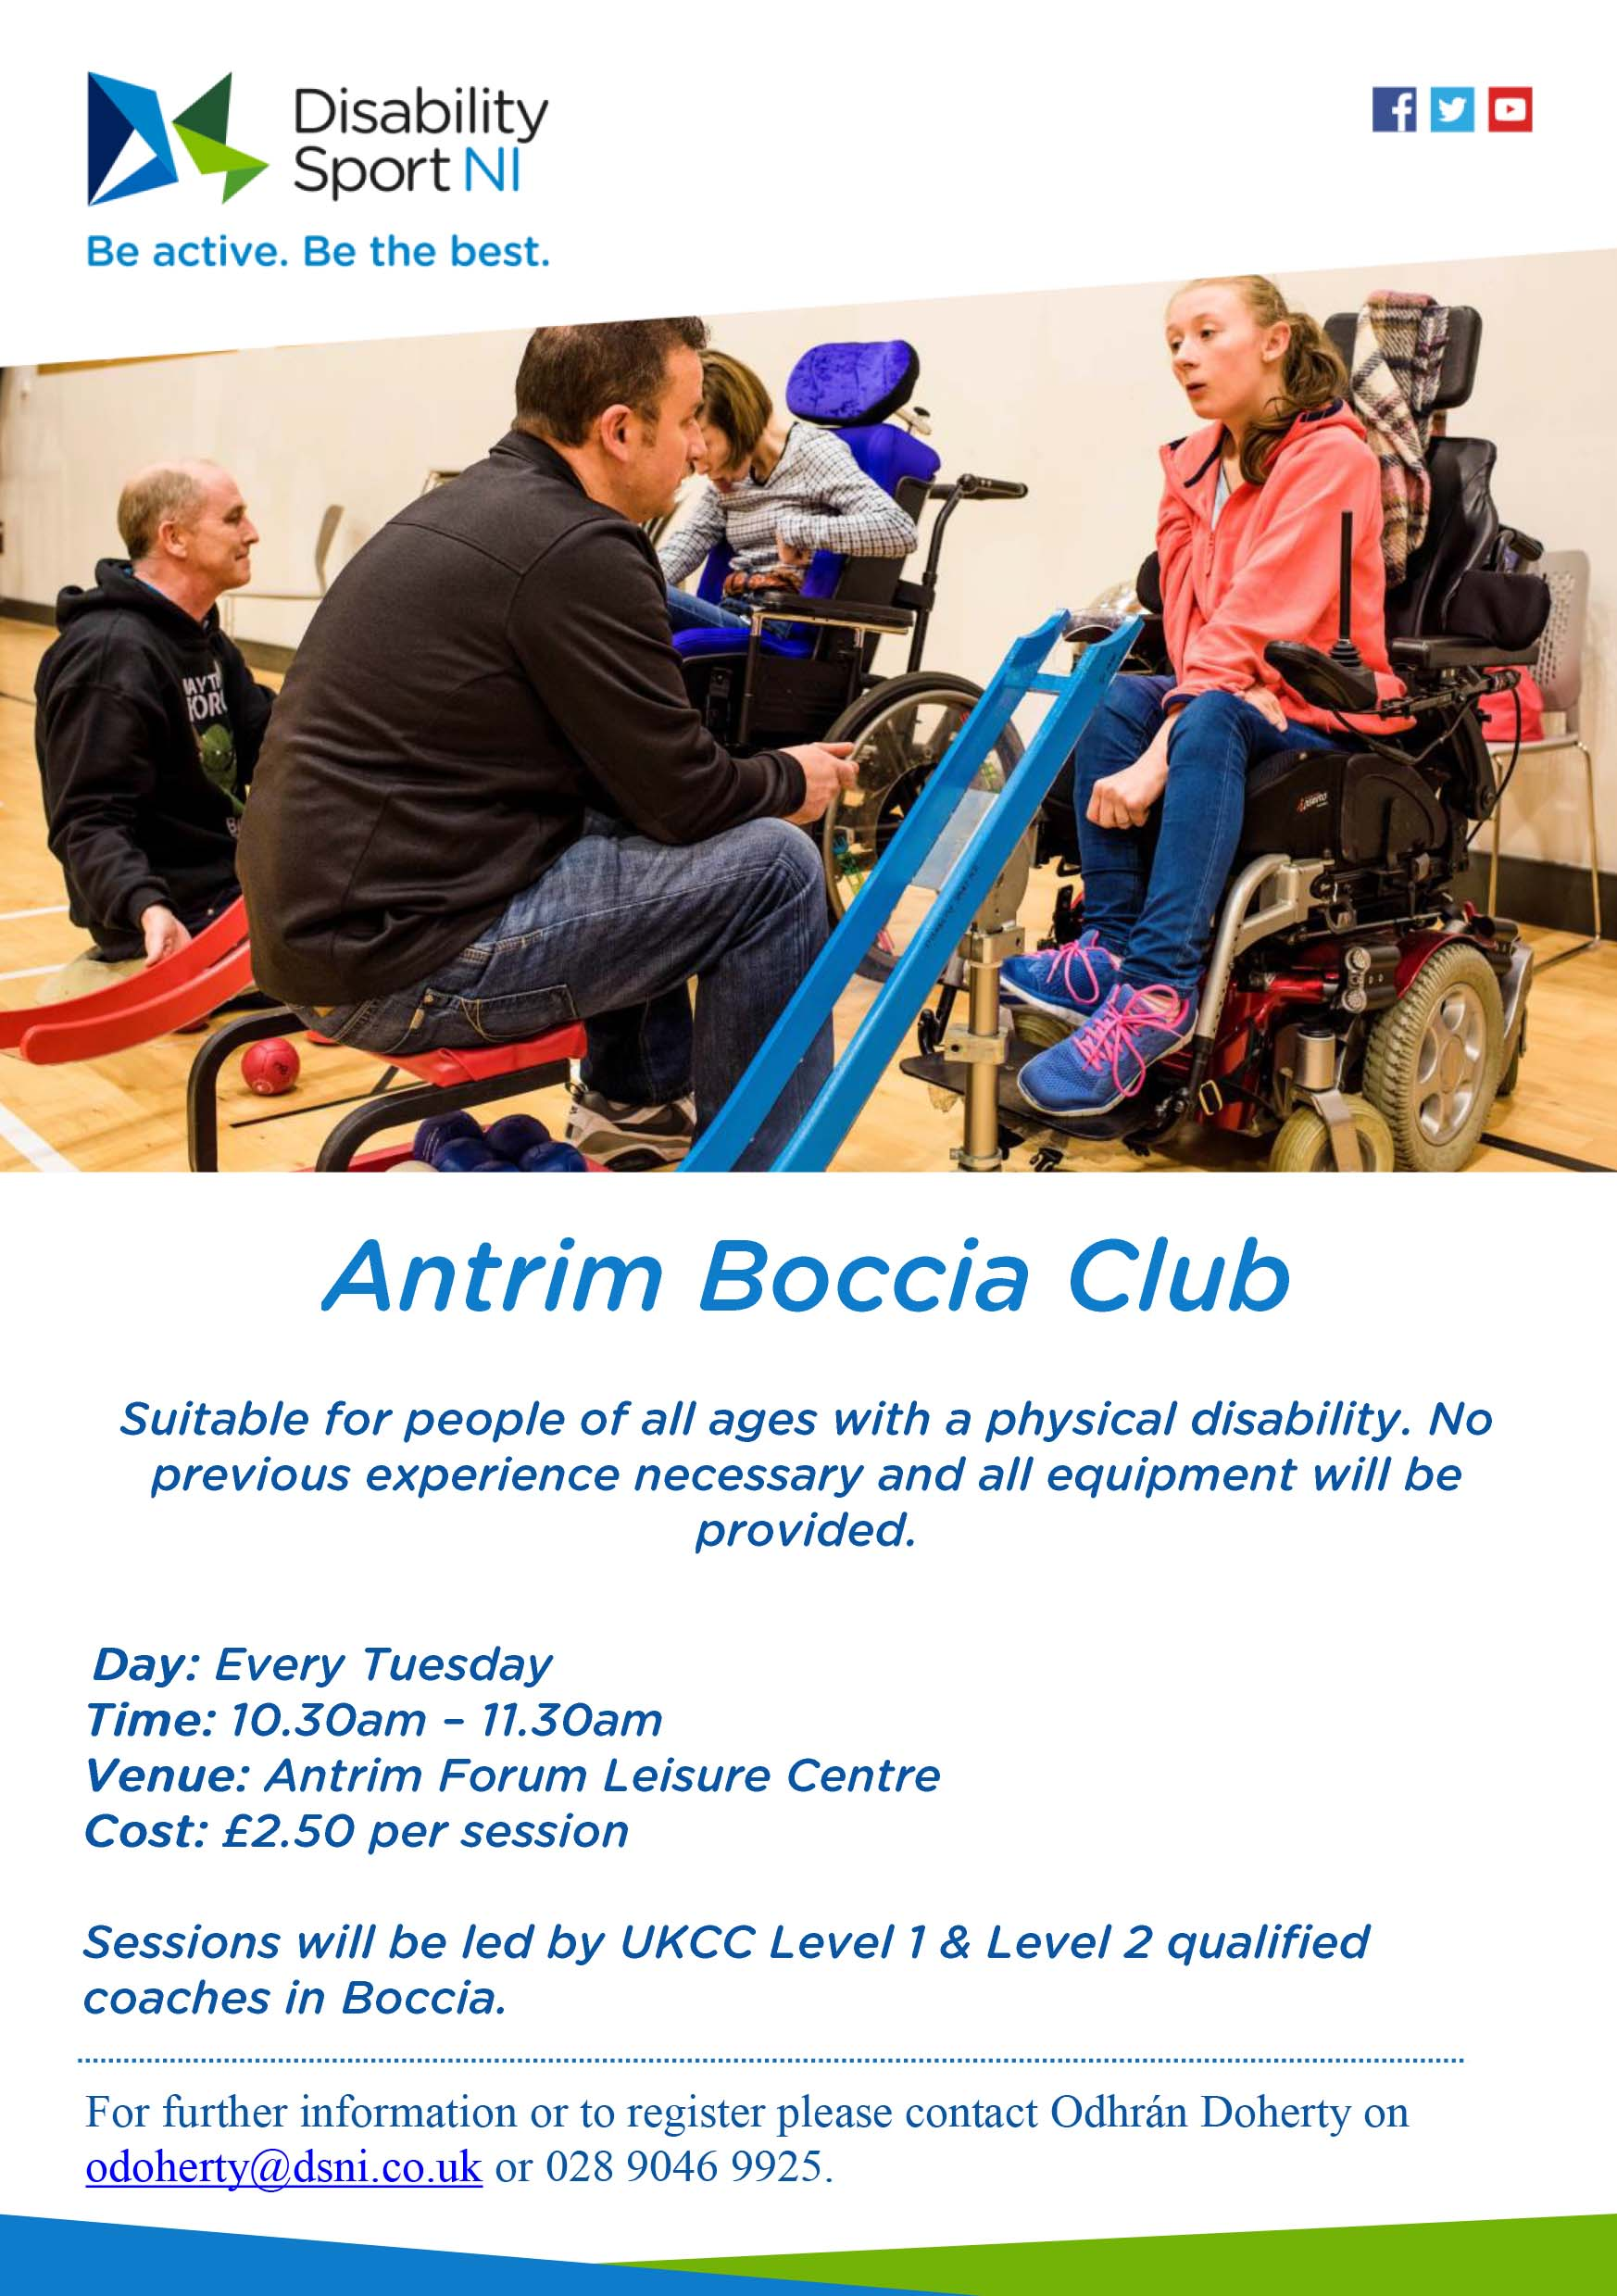 A poster outlining the information above on the website and showing a teenage girl who is a ramp user in boccia talking to her ramp guide